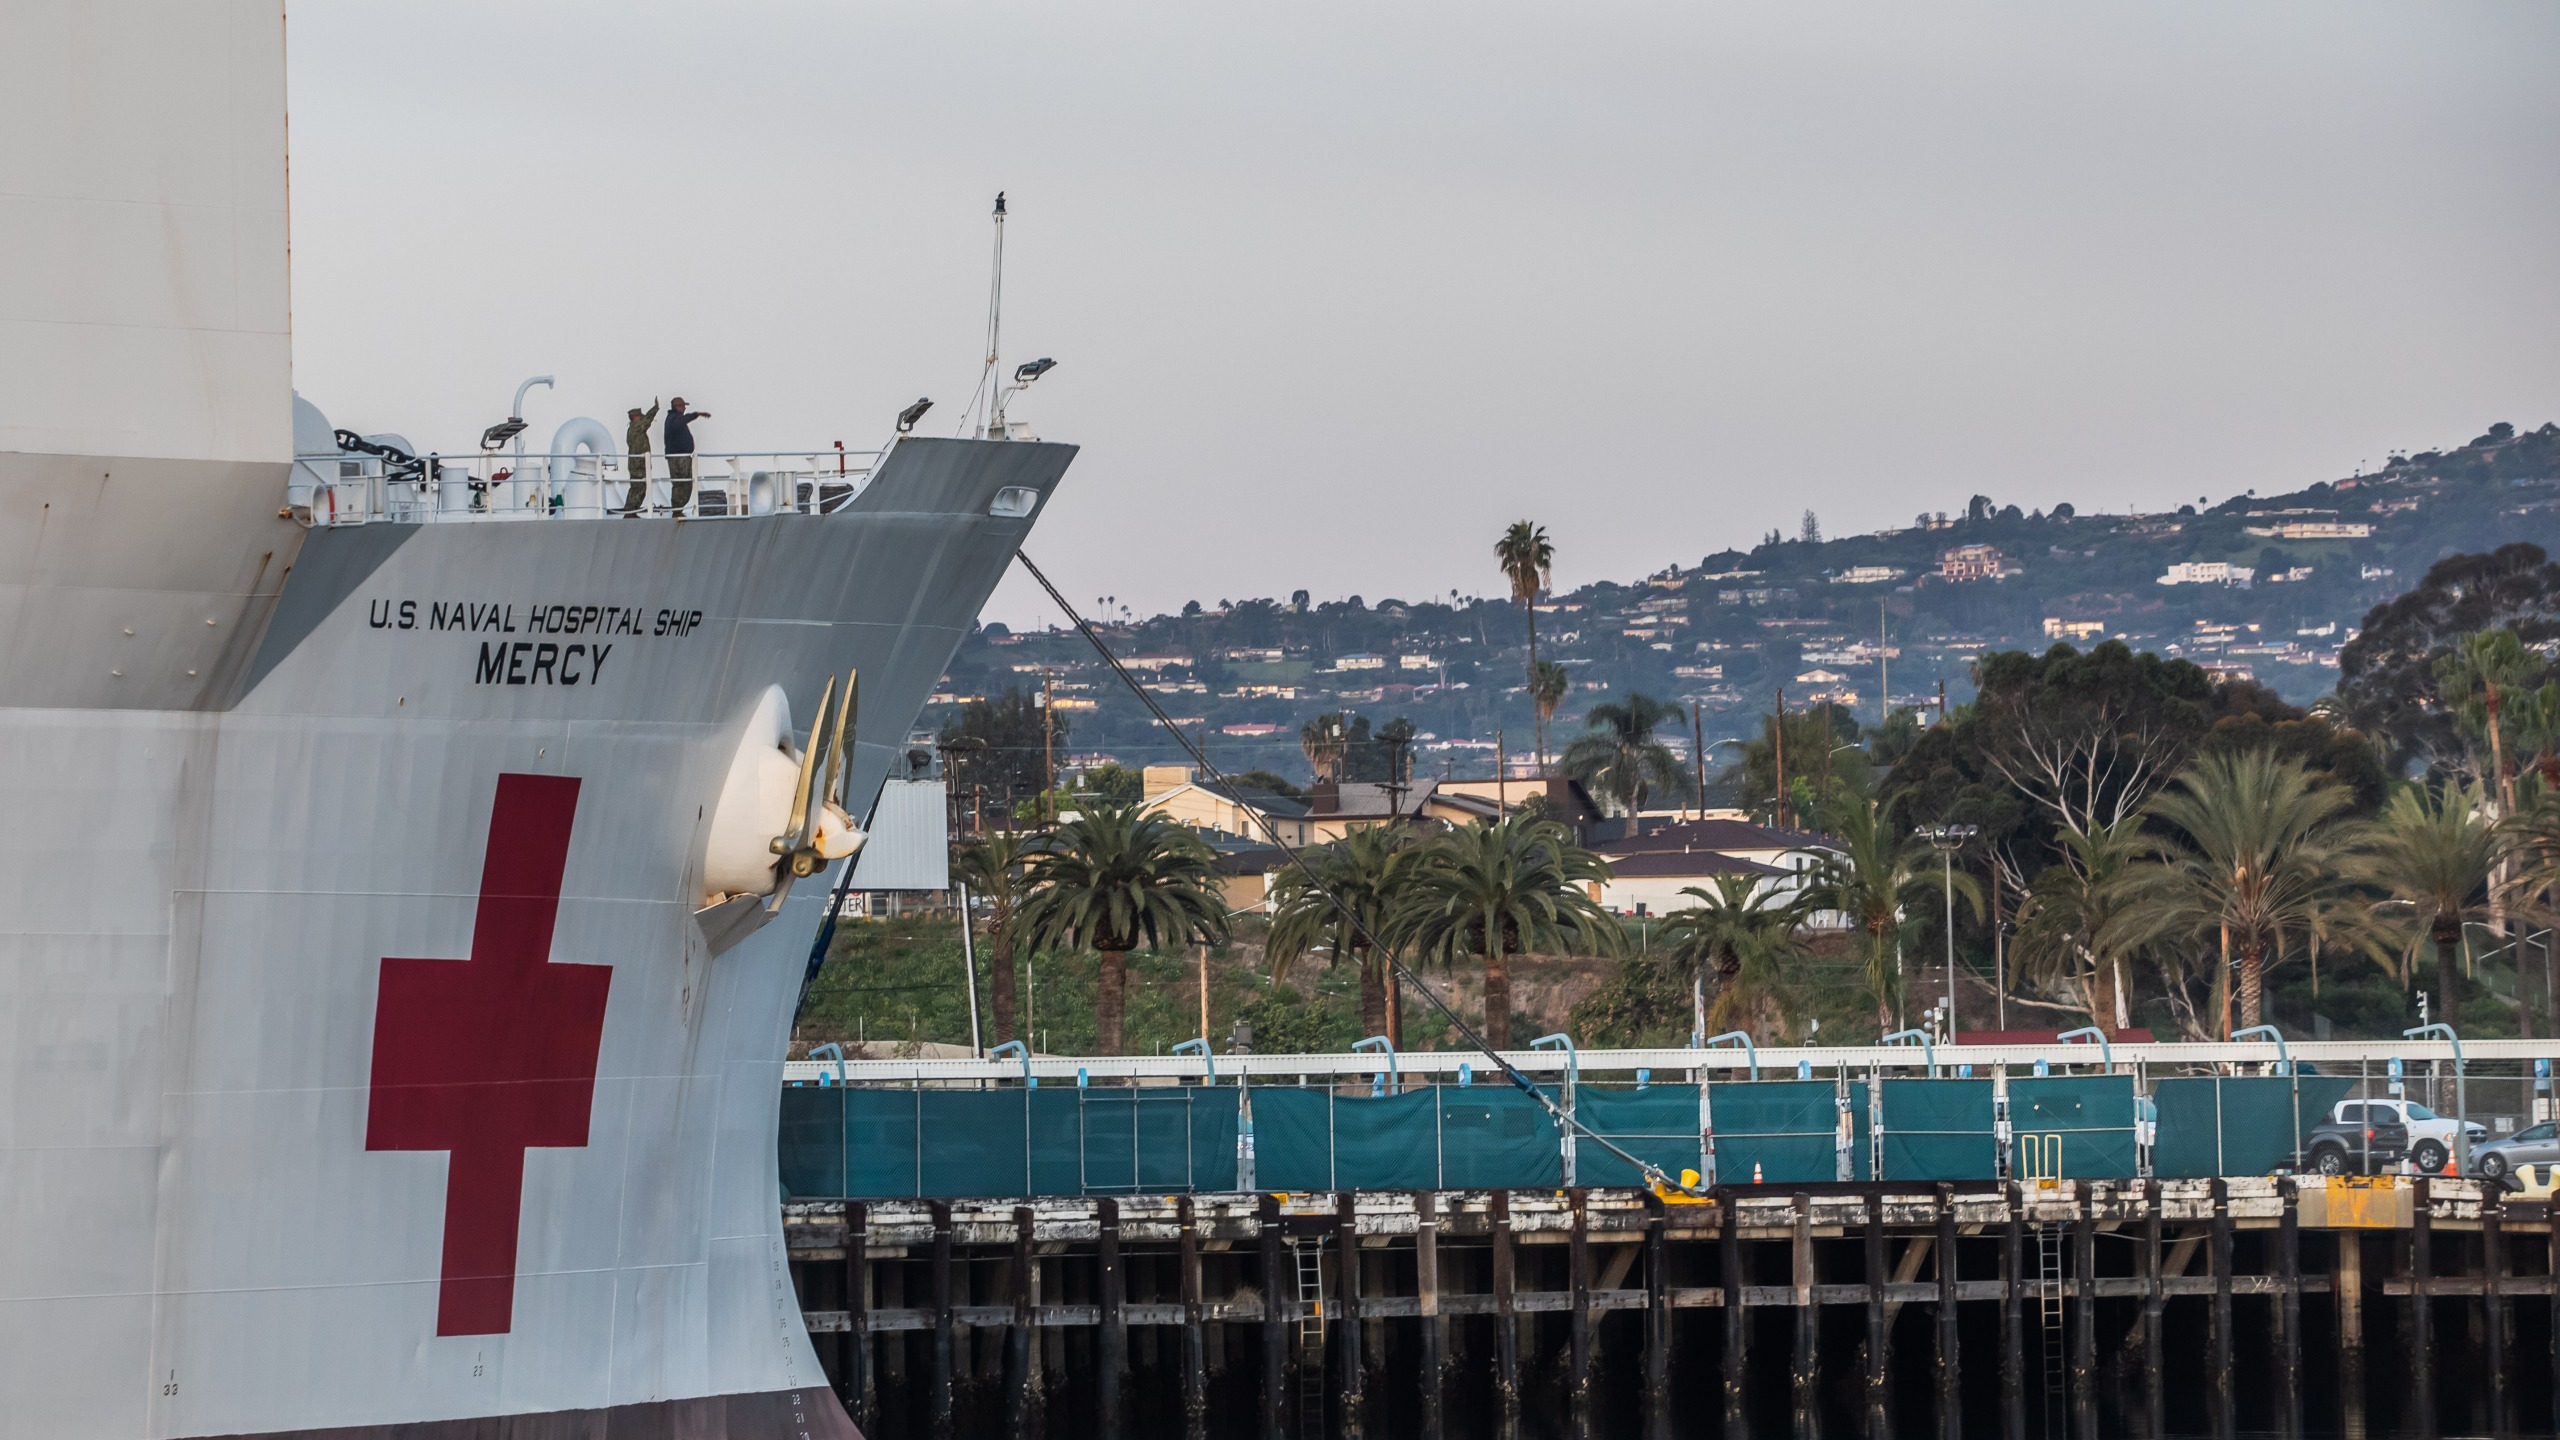 Military personnel of the USNS Mercy wave after the ship docked at the Port of Los Angeles on March 28, 2020. (Credit: Apu Gomes / AFP / Getty Images)